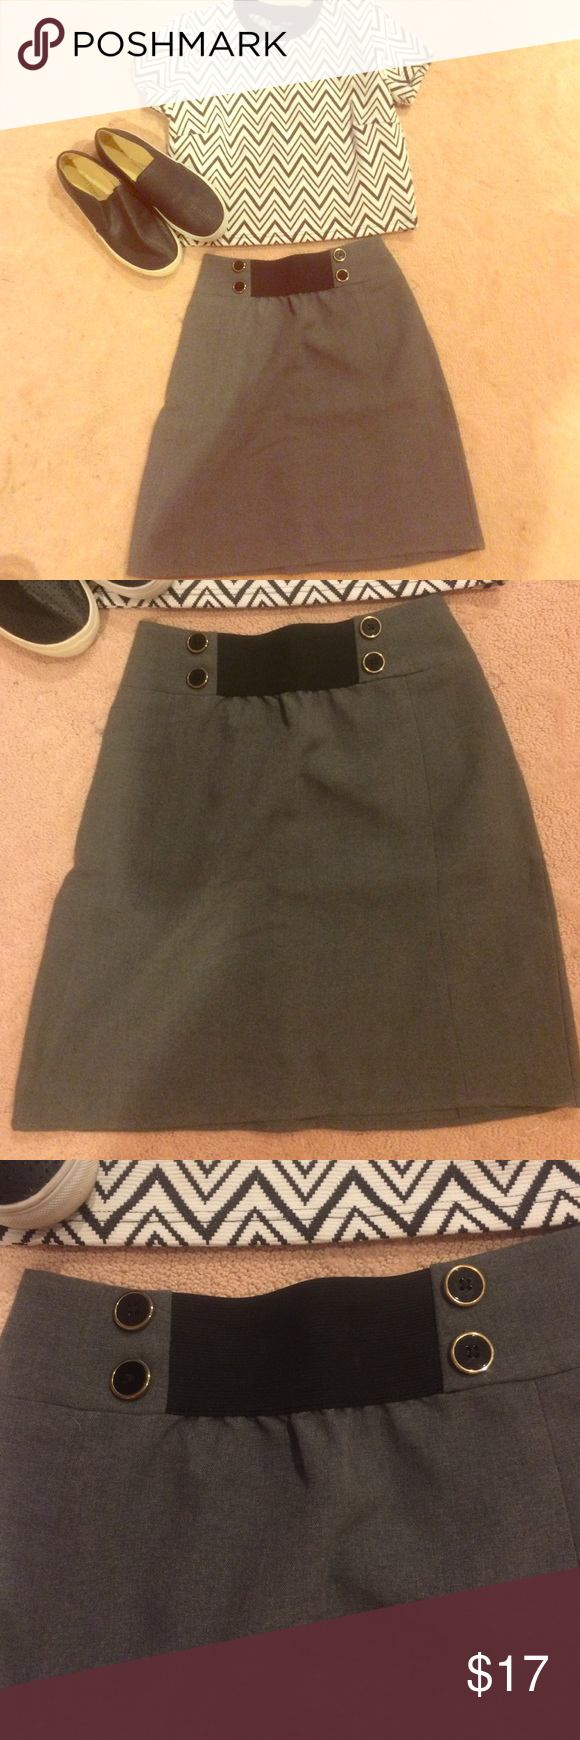 Urban Outfitters Grey Button Front Skirt NWOT Adorable skirt for work or play! Features an A-line cut and elastic and button details on the waist. Matches almost anything! NWOT; runs a little small! Urban Outfitters Skirts